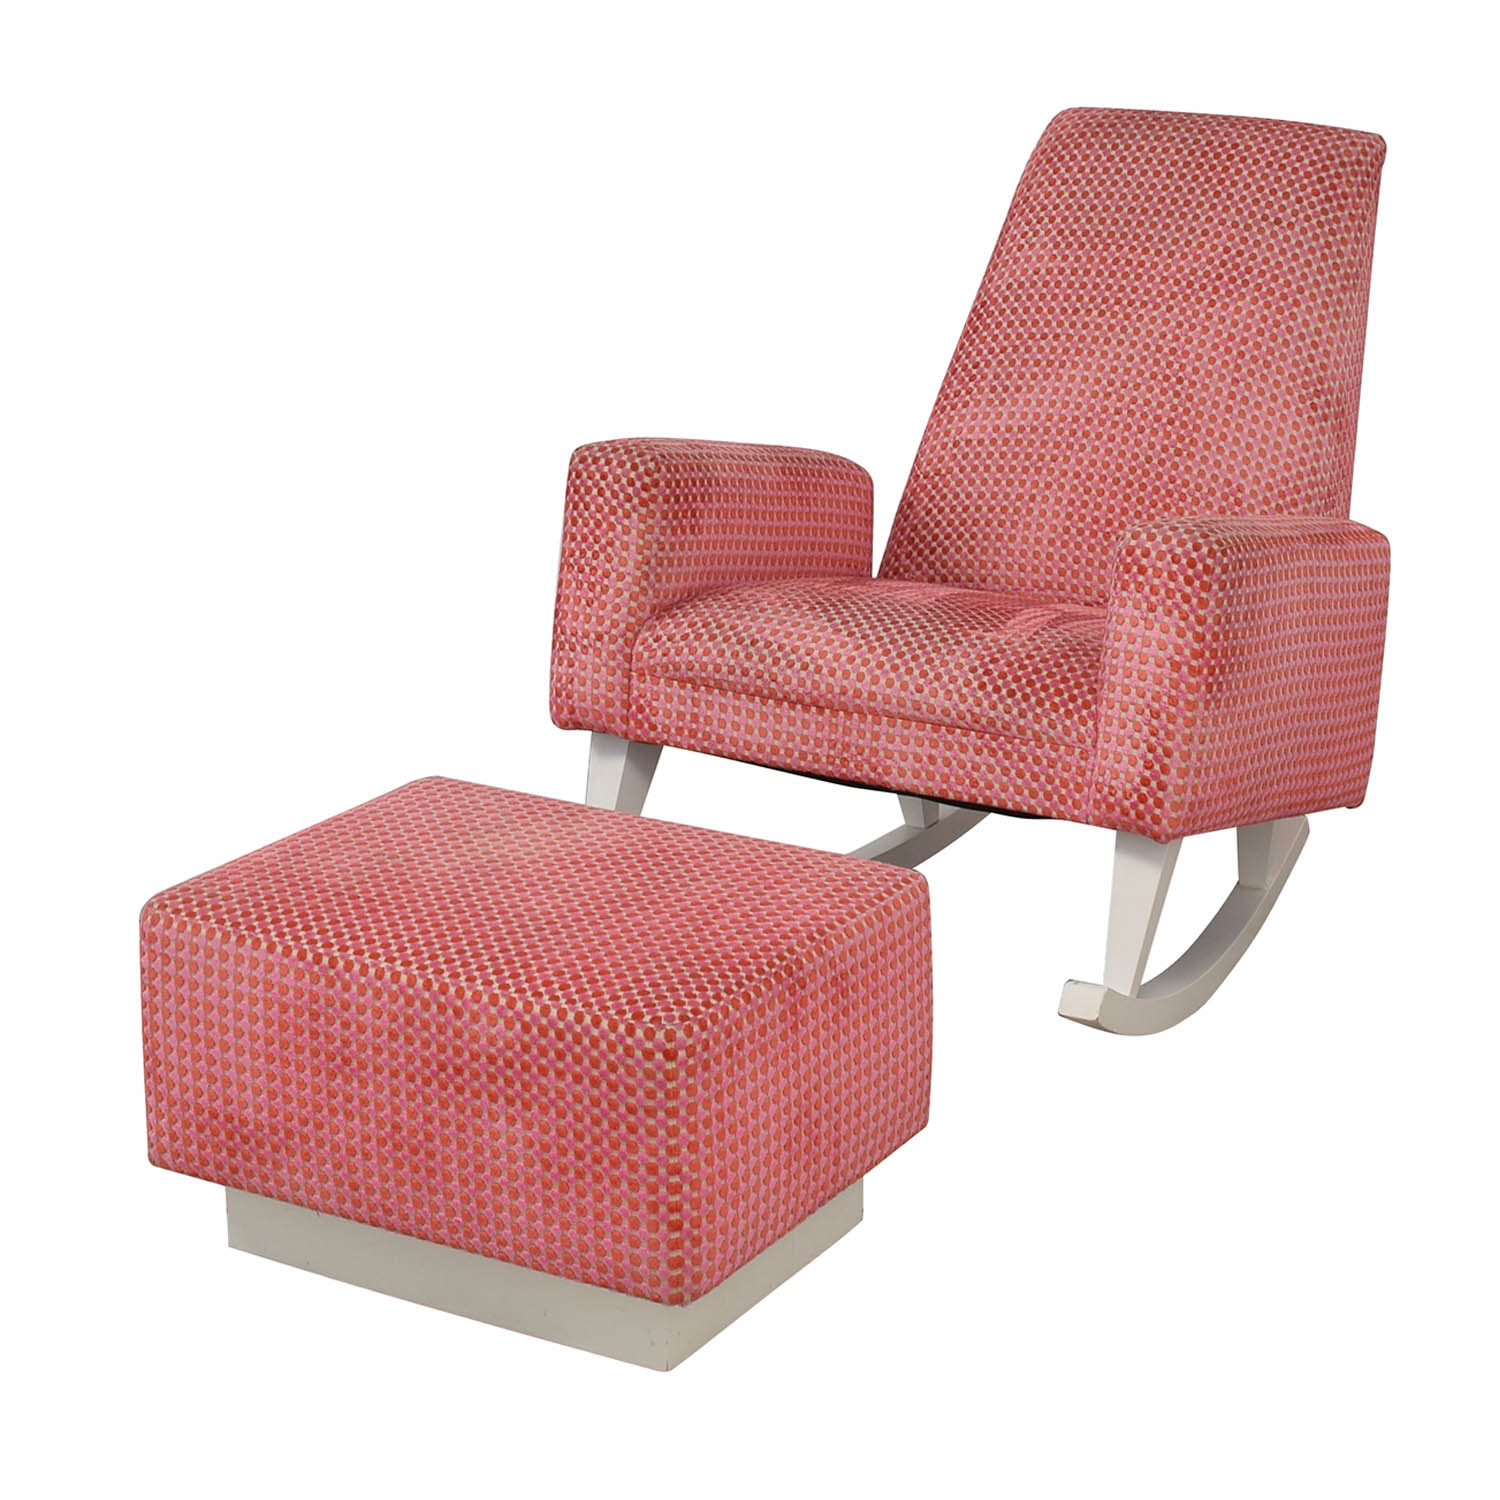 Furniture Masters Pink Chair With Ottoman Nj